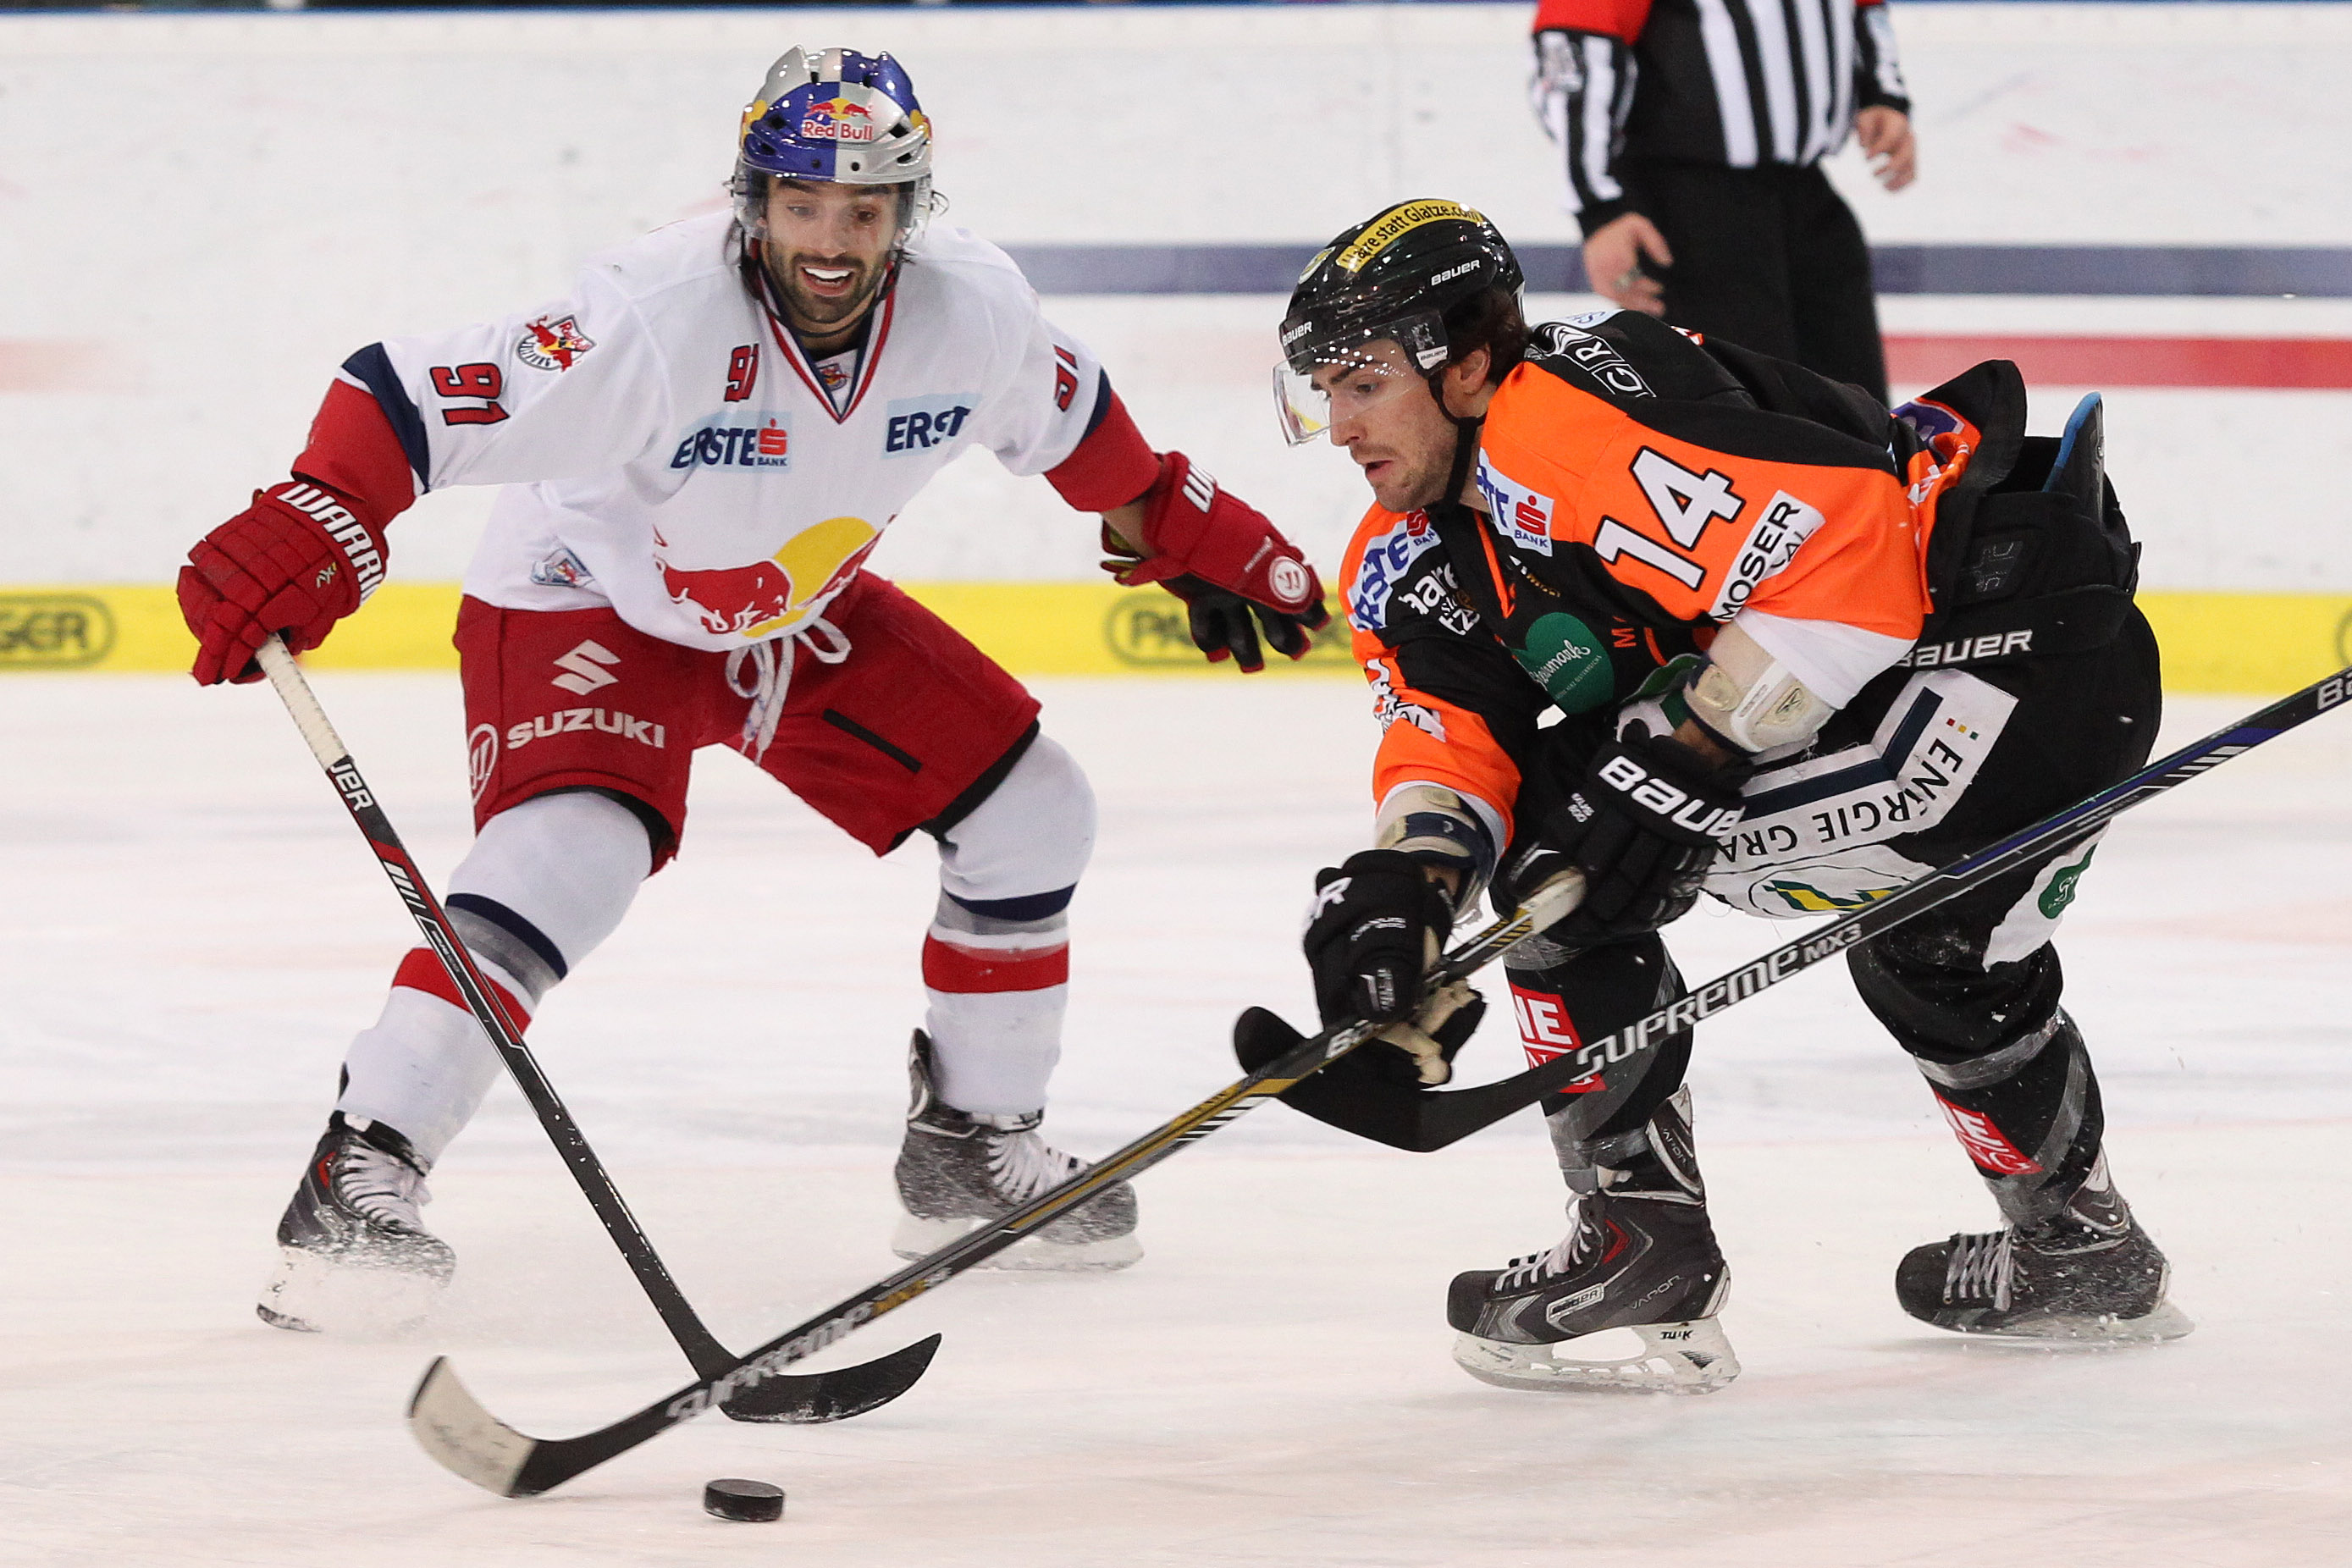 ICE HOCKEY – EBEL, EC RBS vs 99ers